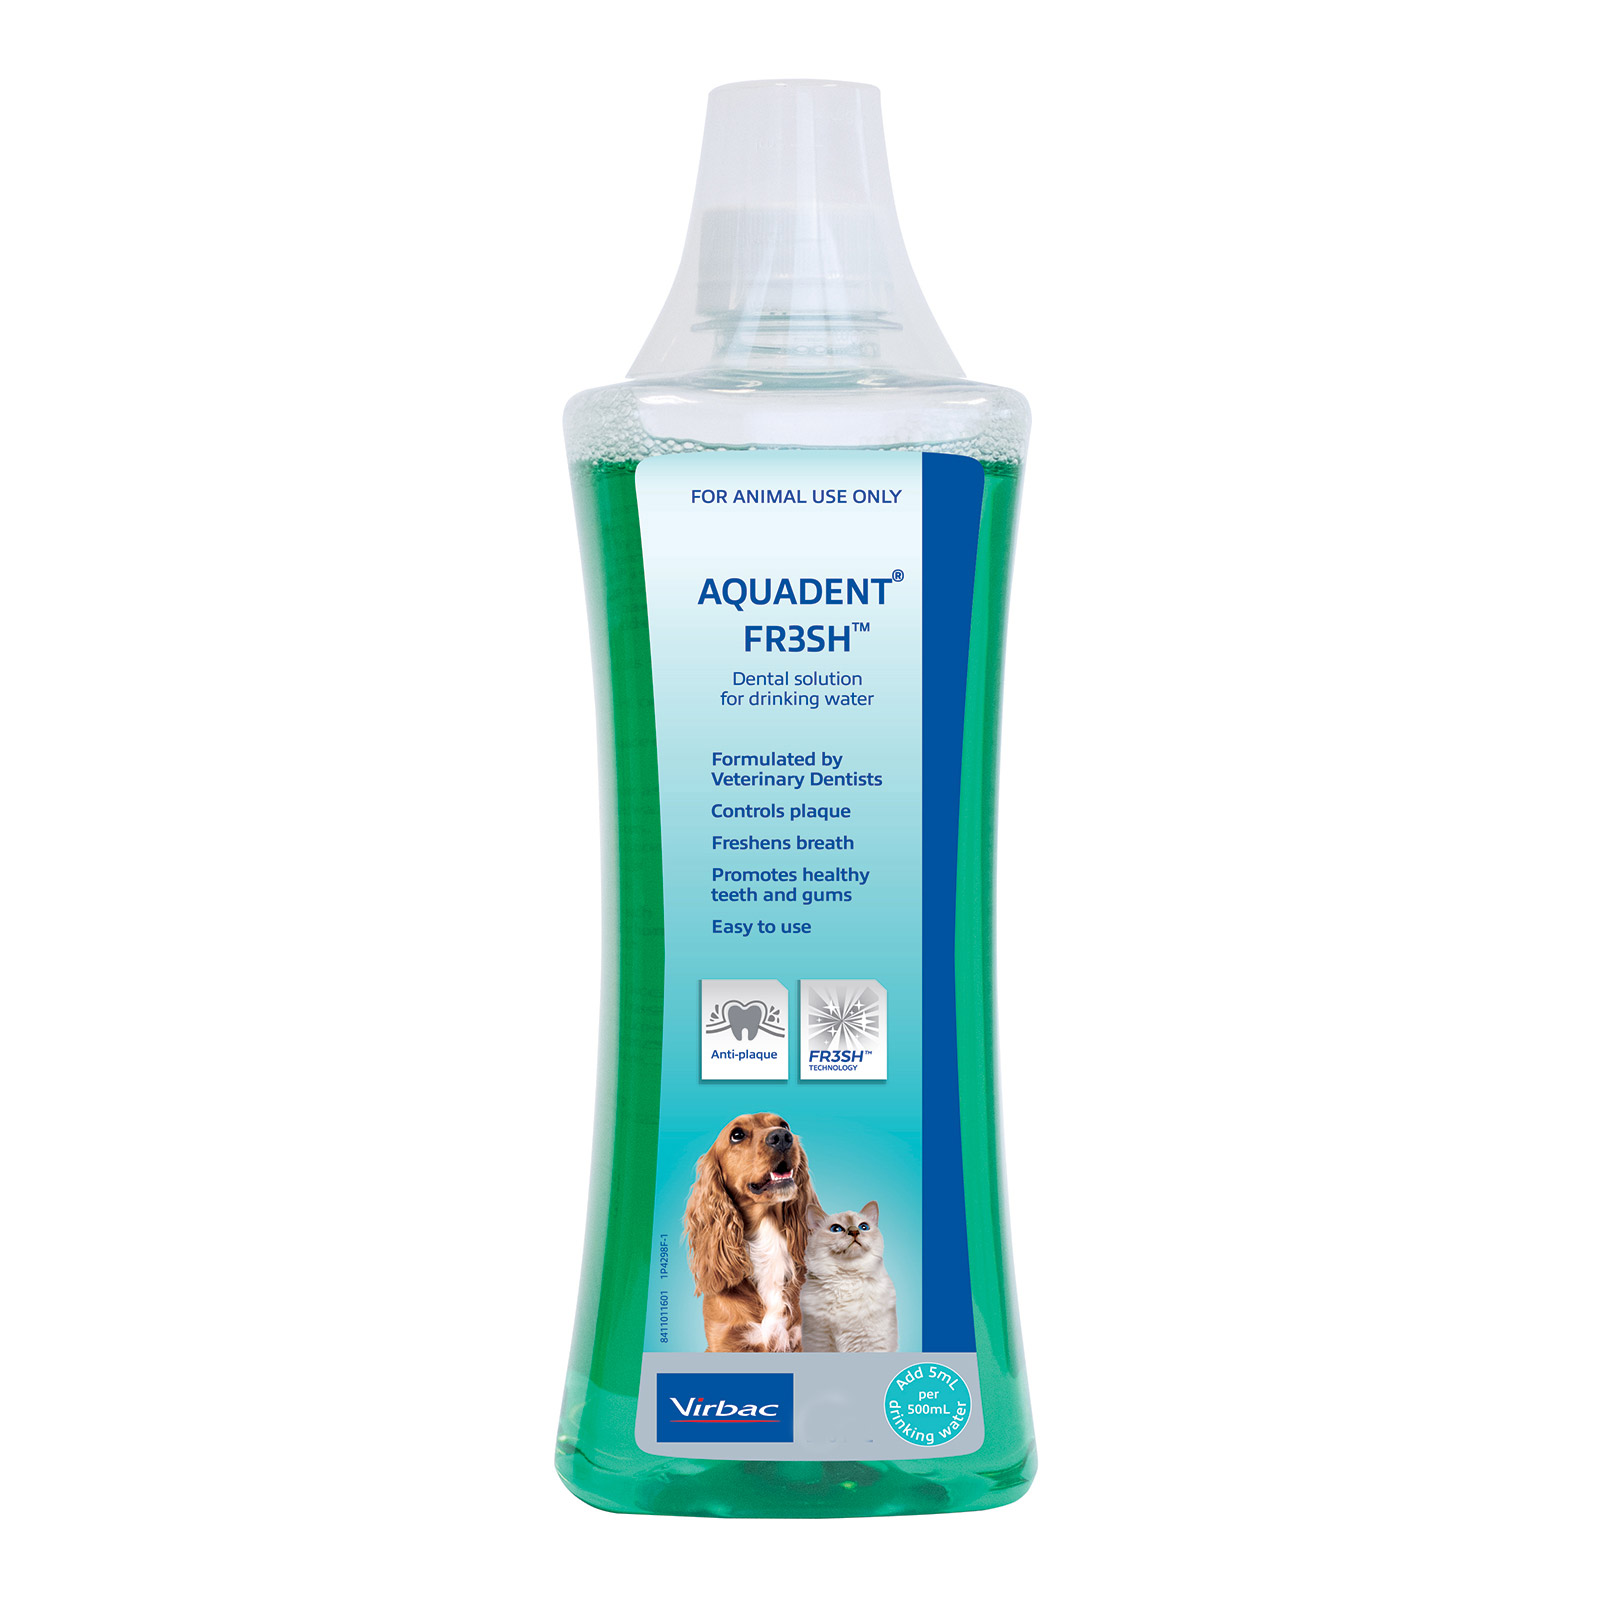 Aquadent FRESH Water Additive for Dogs and Cats